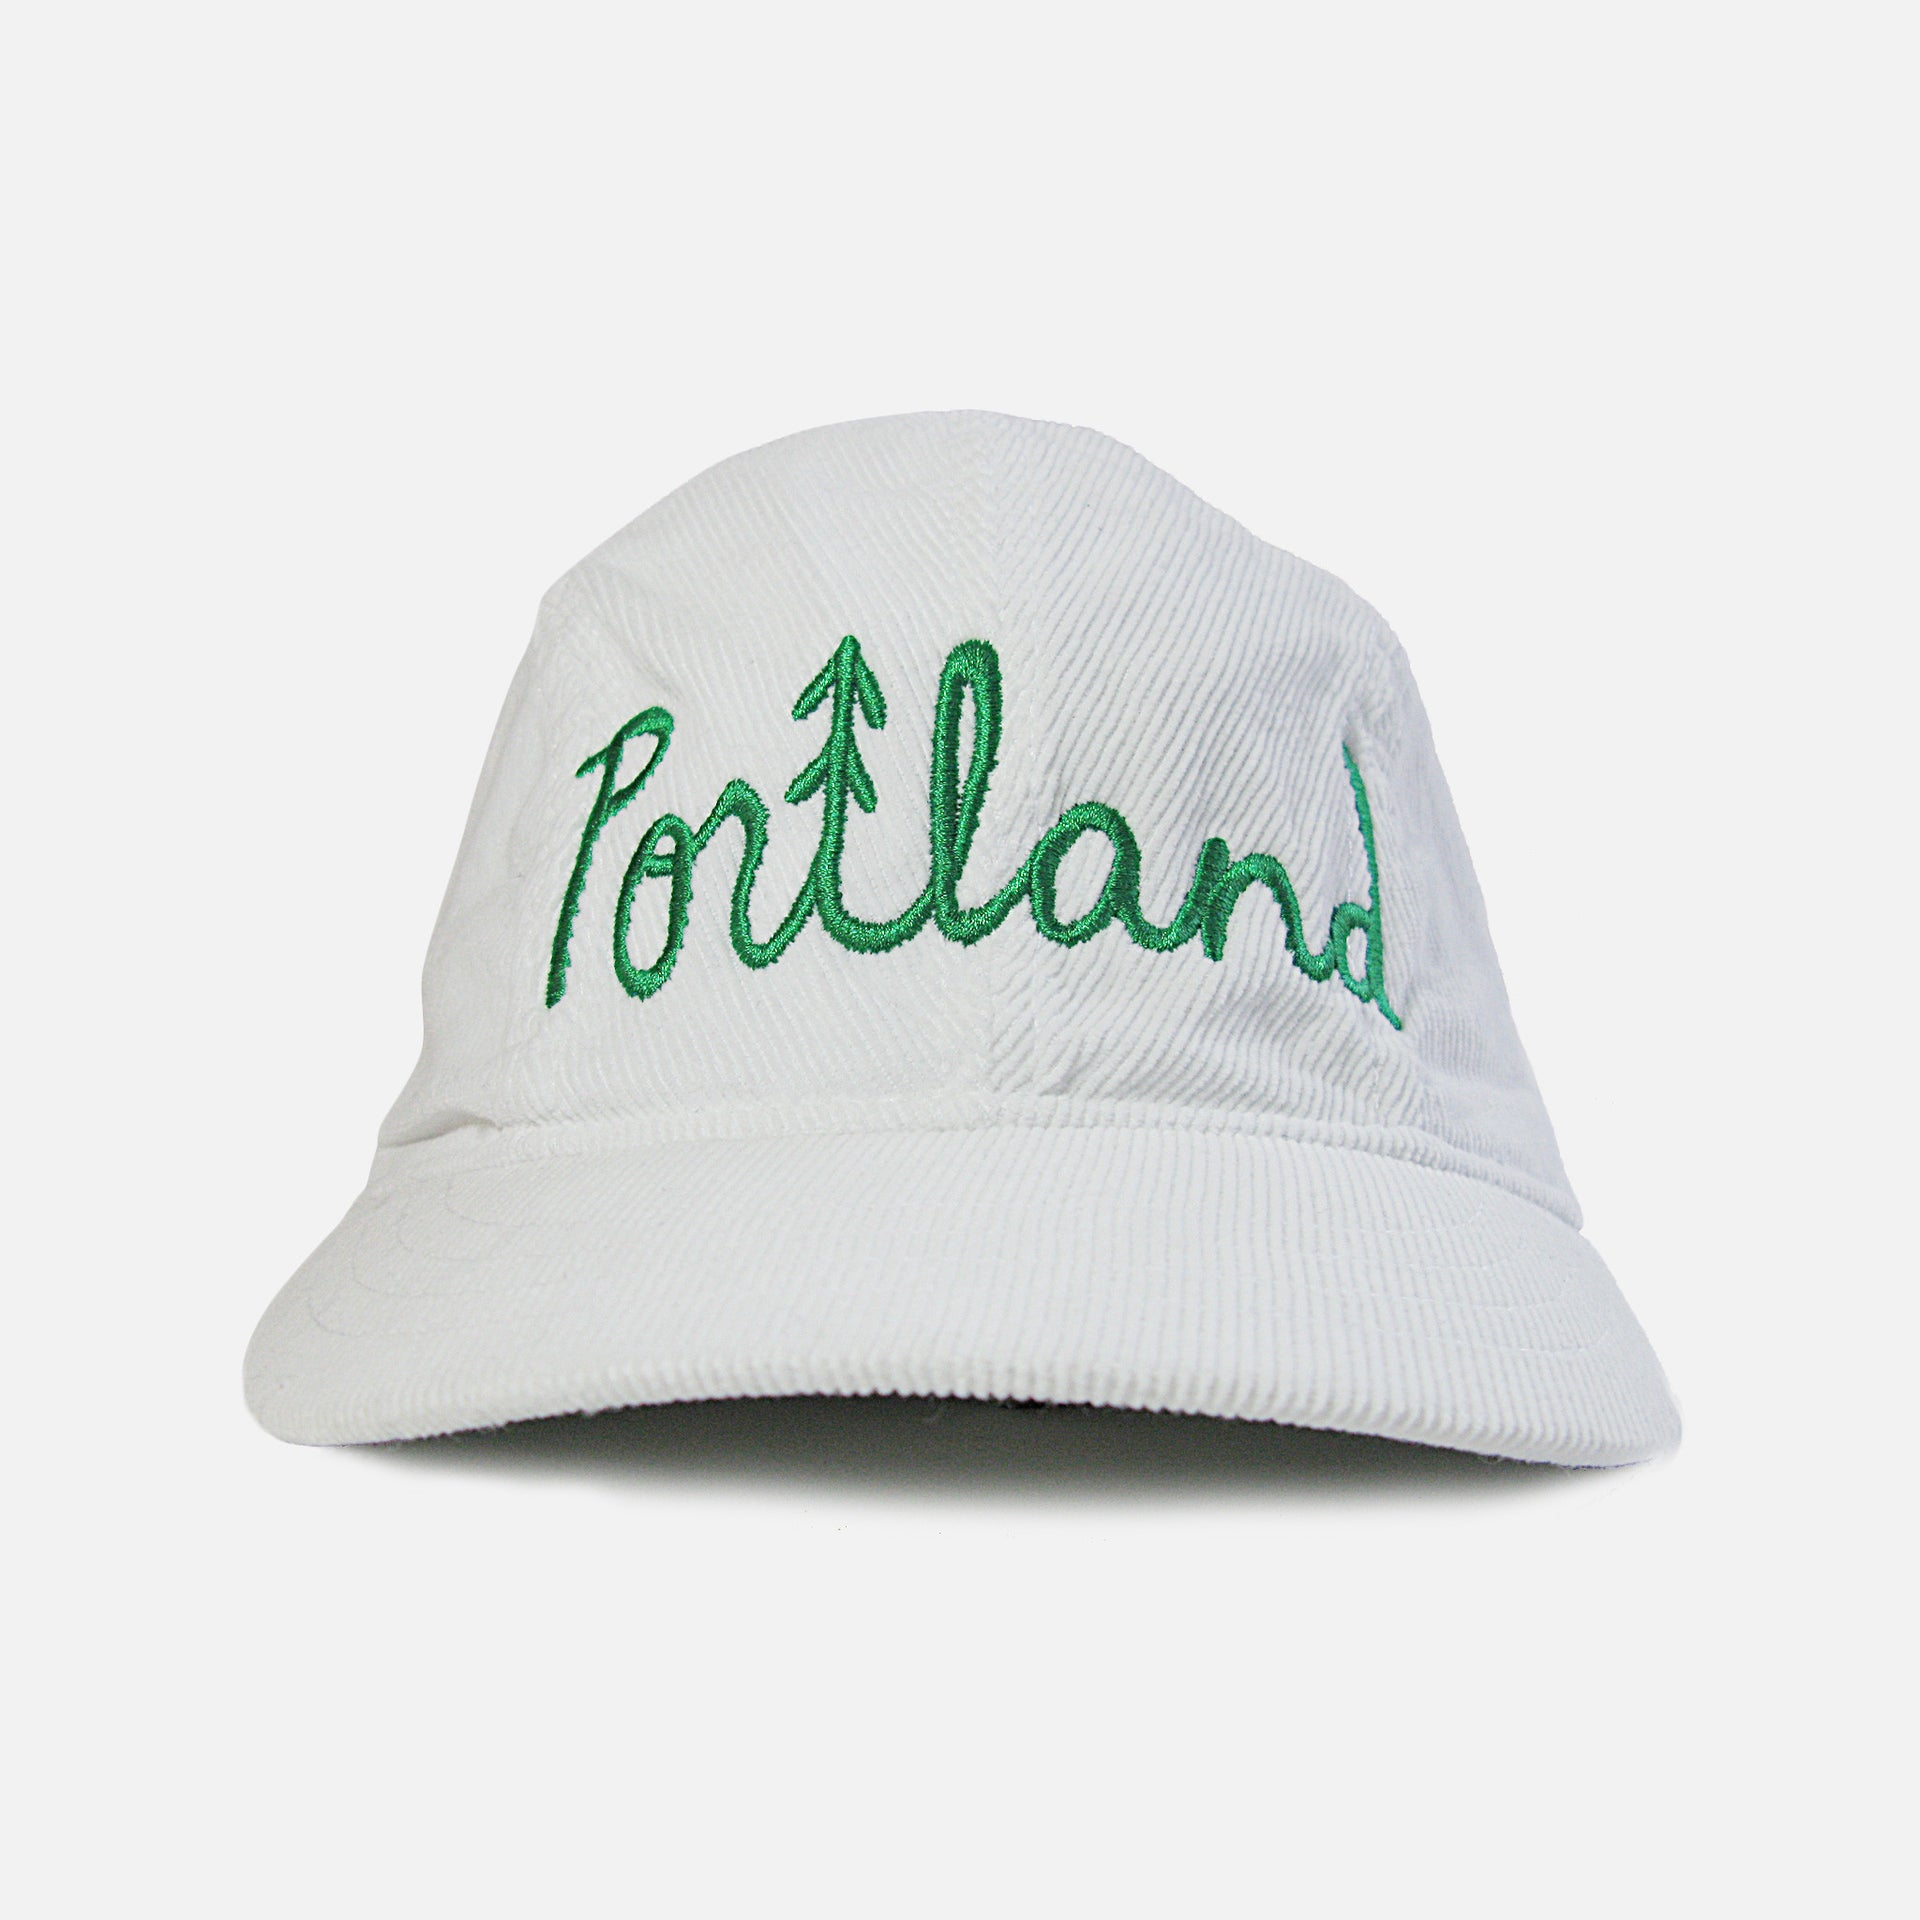 Portland Corduroy Short Bill Hat (Women's Fitted)